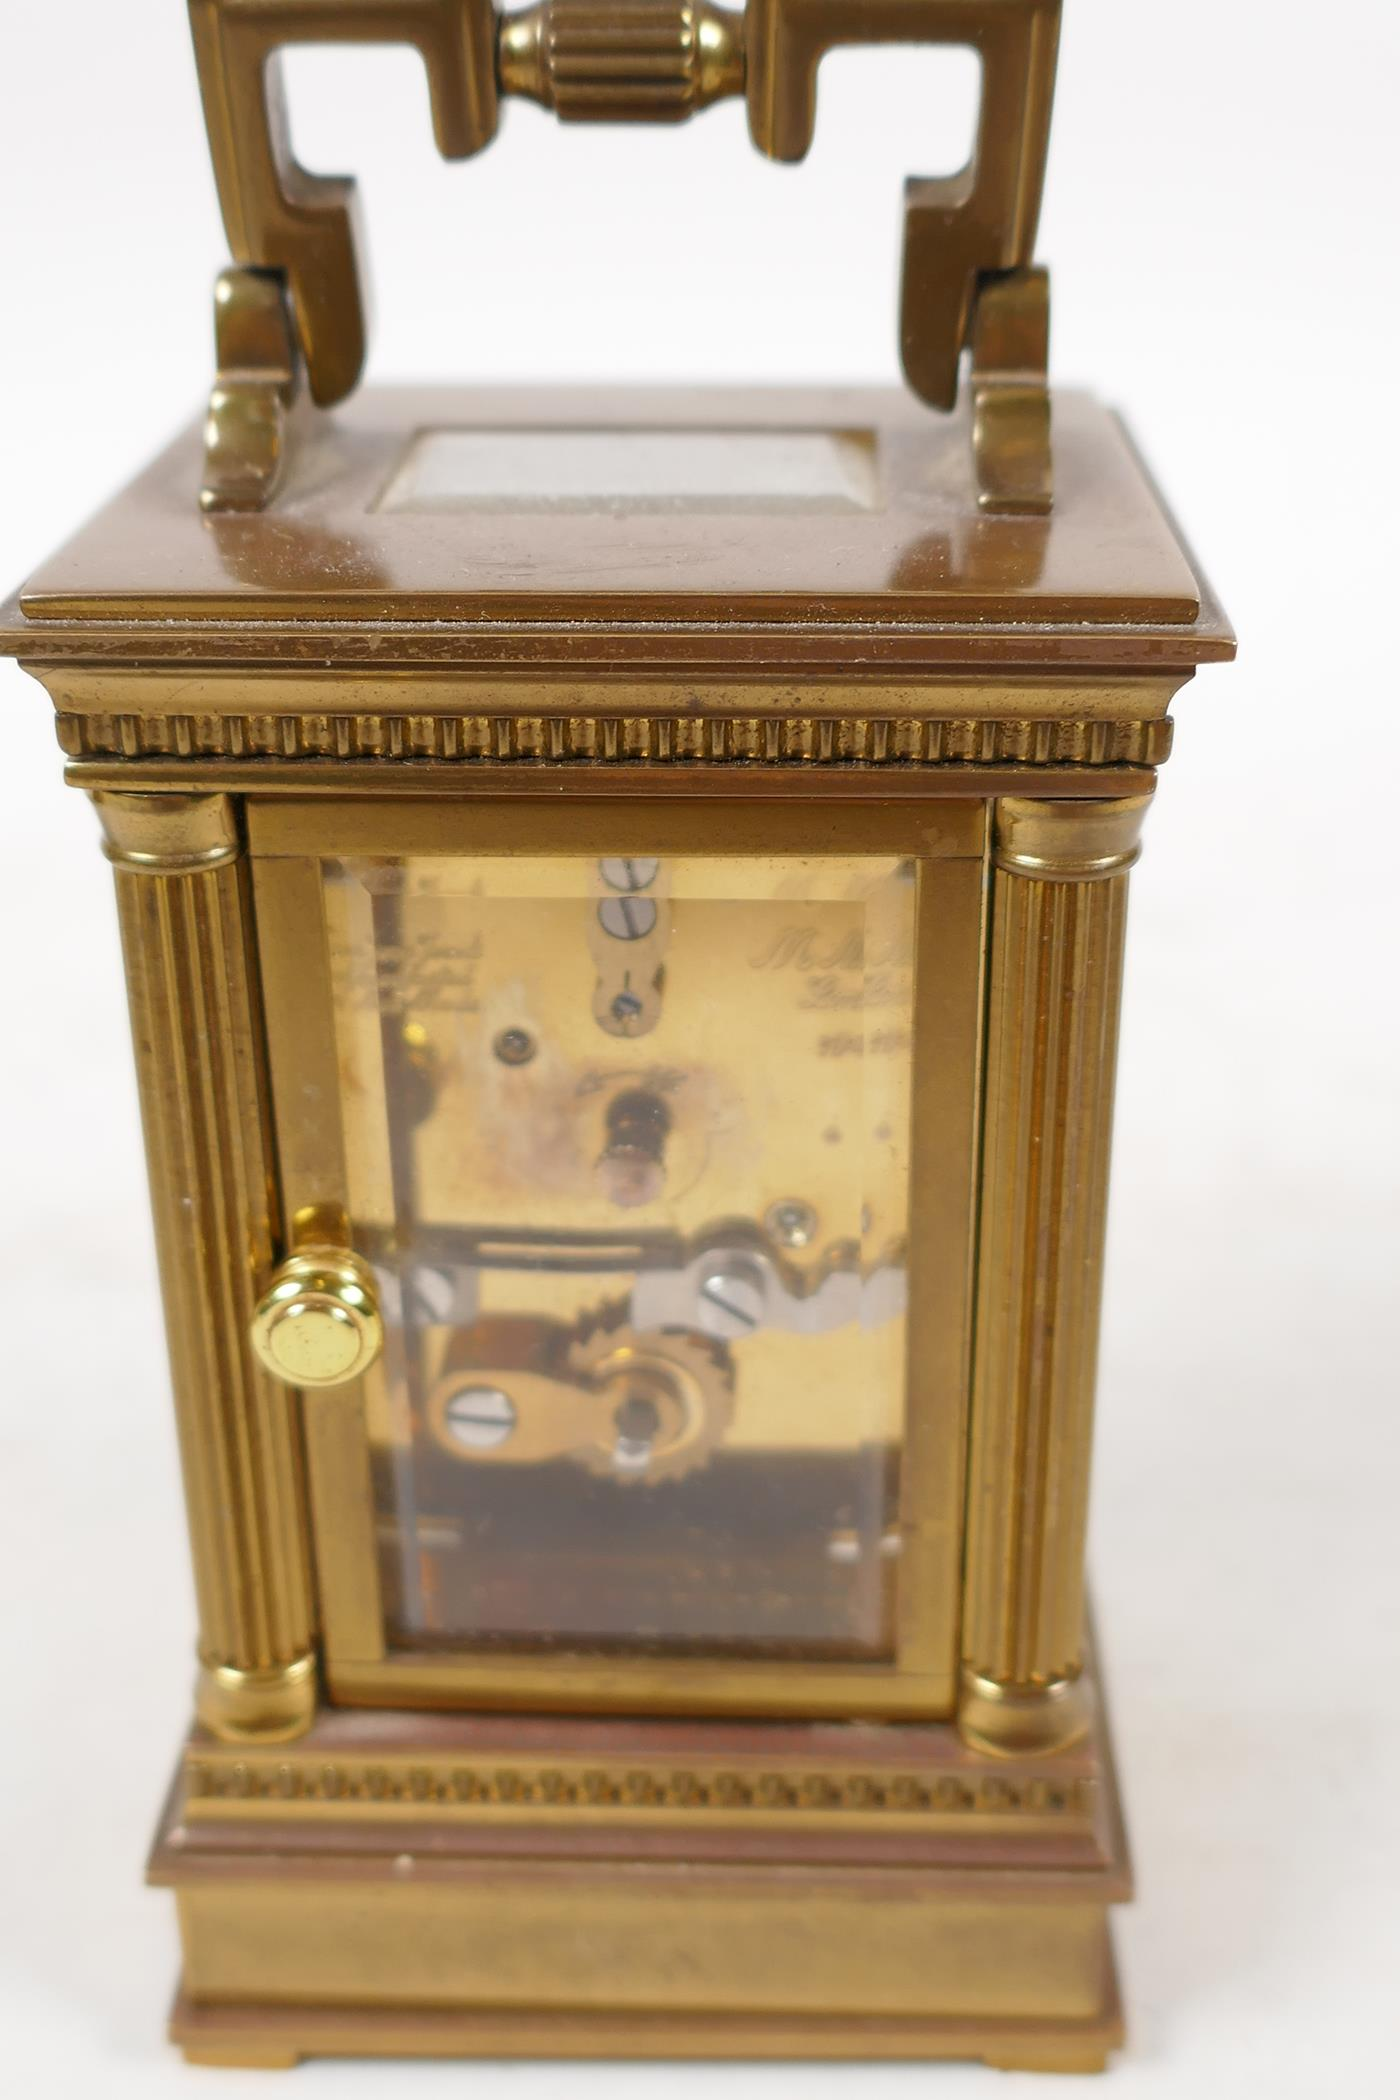 A Swiss made carriage clock in brass case with reeded columns, white enamel dial and Roman numerals, - Image 3 of 4